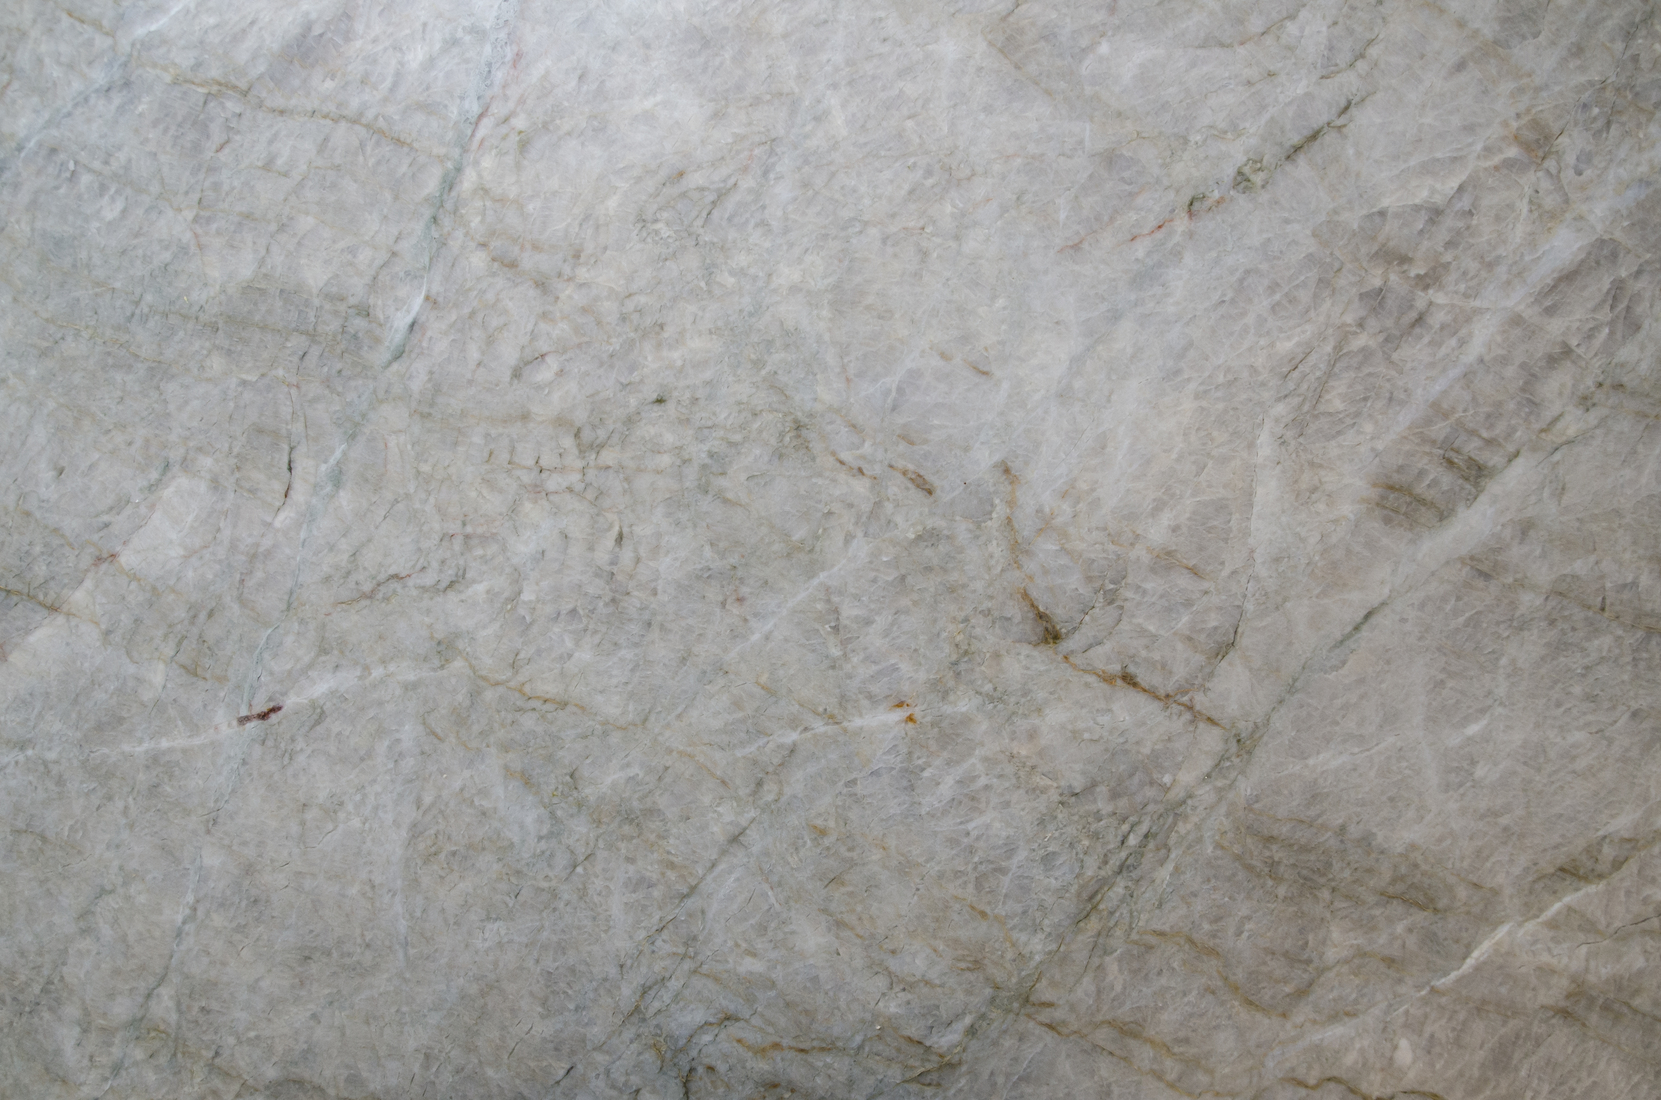 Madre Perola Quartzite (Mother of Pearl Quartzite)